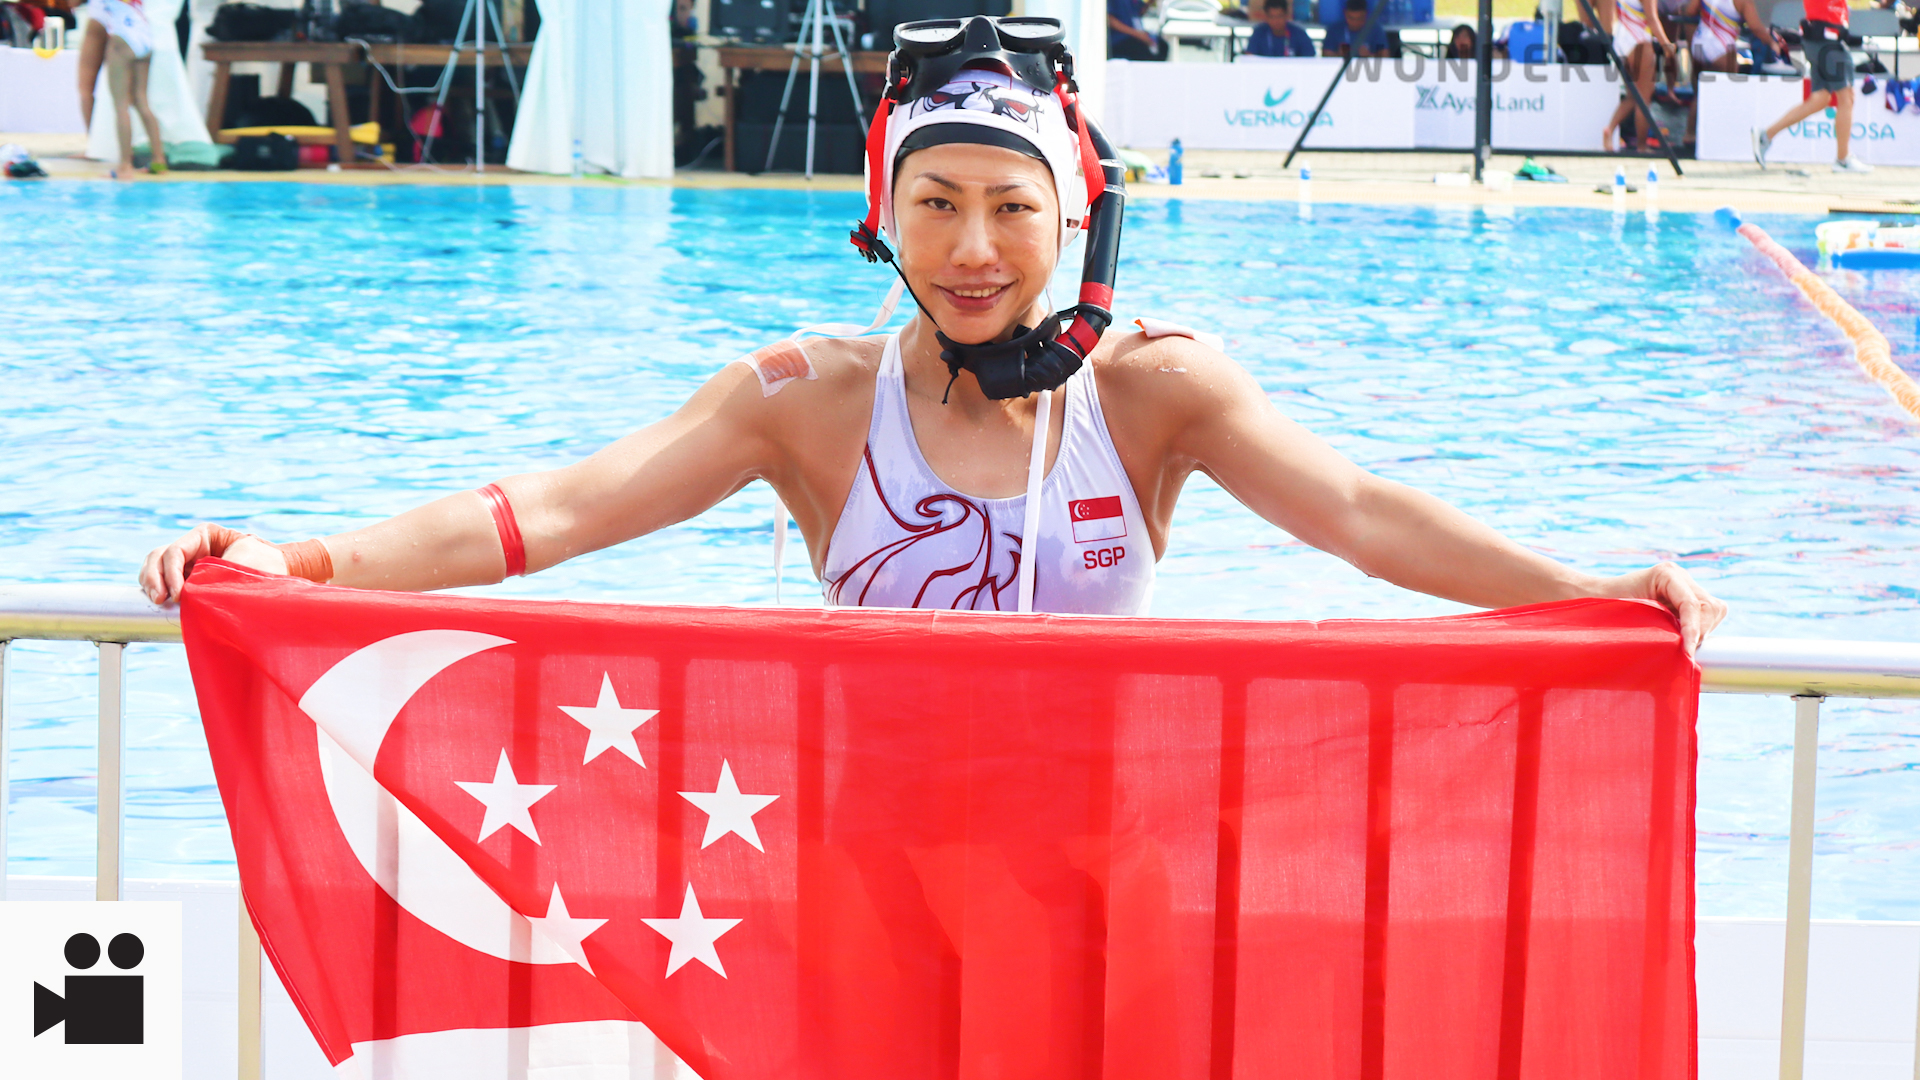 Does This SEA Games Gold Medallist Look 50 To You? And Does Age Even Matter?